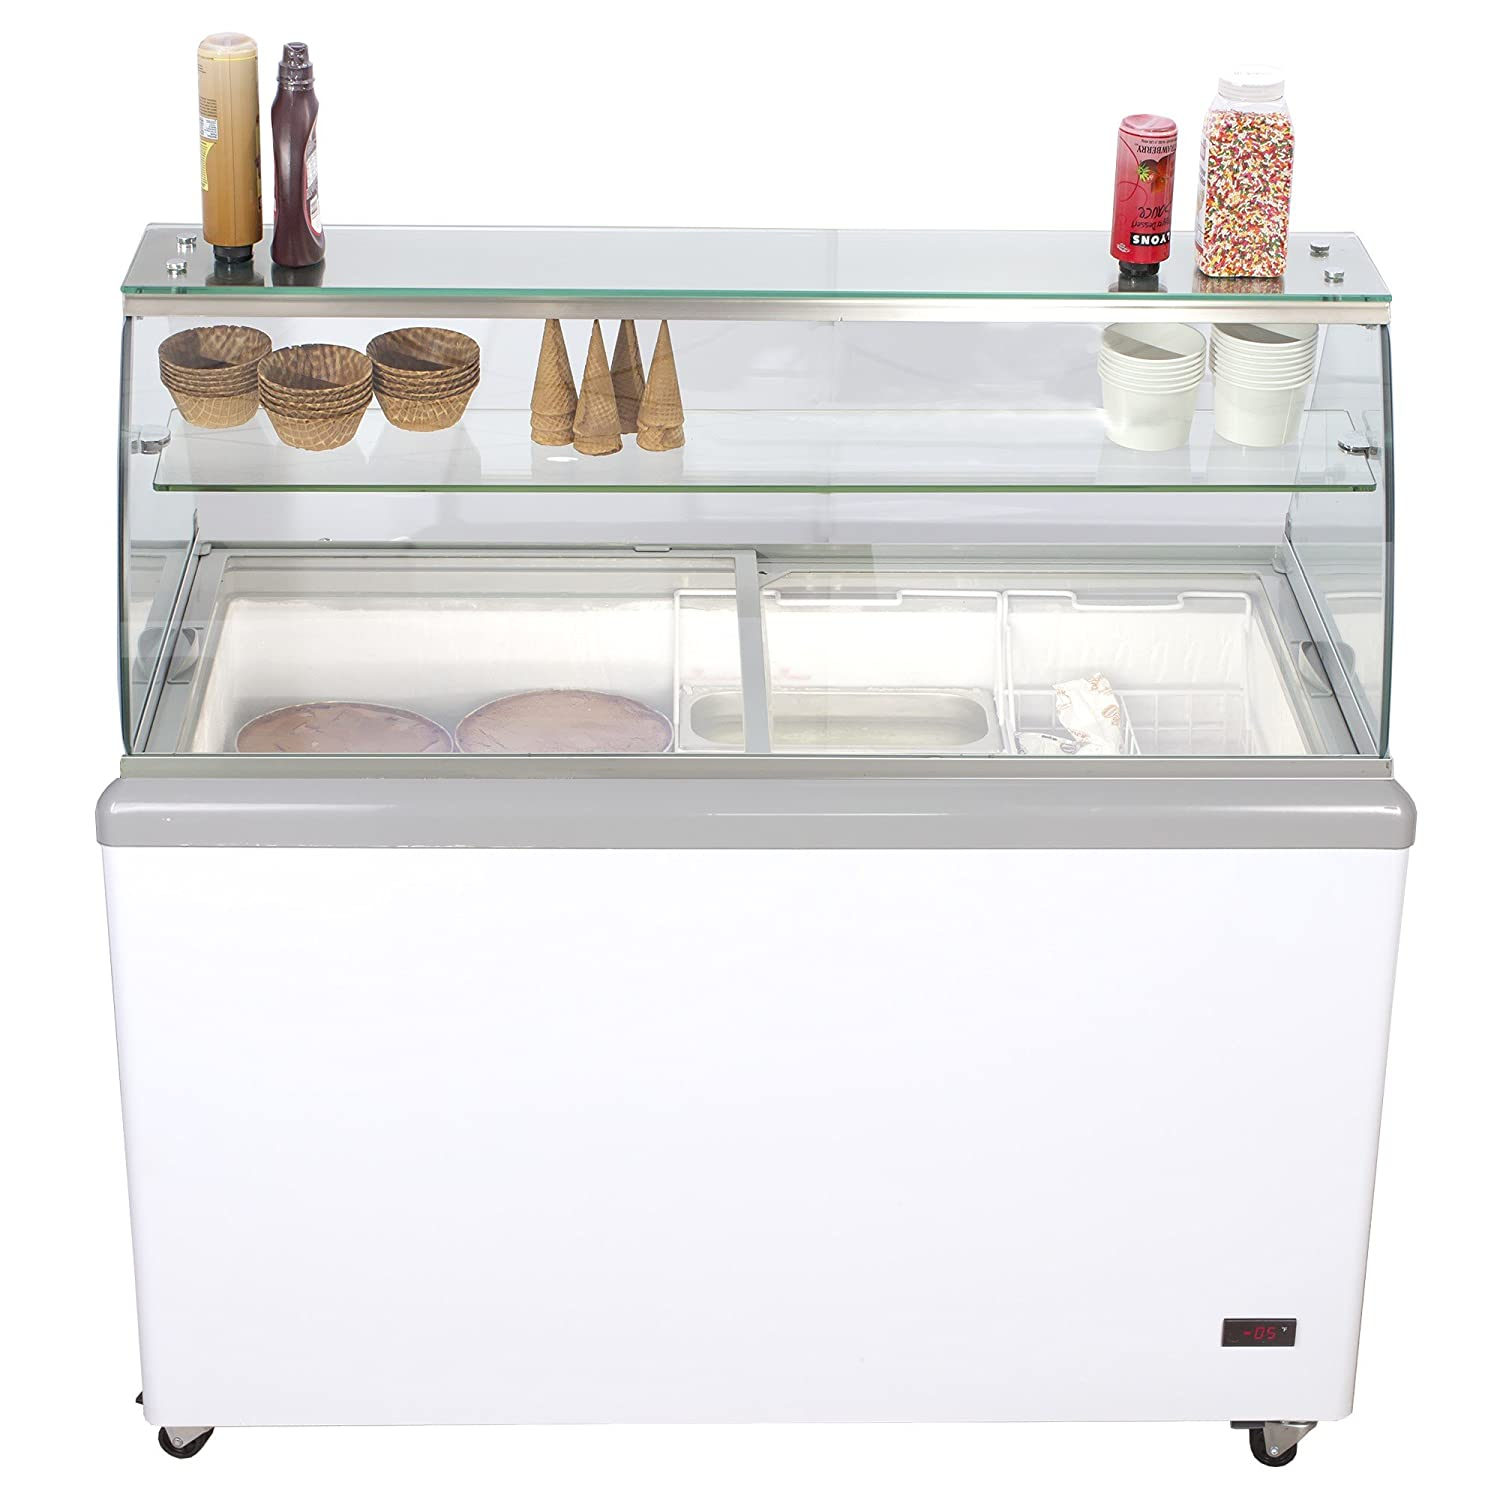 Chef's Exclusive Commercial 8 Flavor Frost Free Ice Cream Dipping Cabinet Case Sub Zero Freezer 14 Cubic Feet Including Skirts Displays 8 Tubs and Stores 6 Additional, 52 inch Wide, White